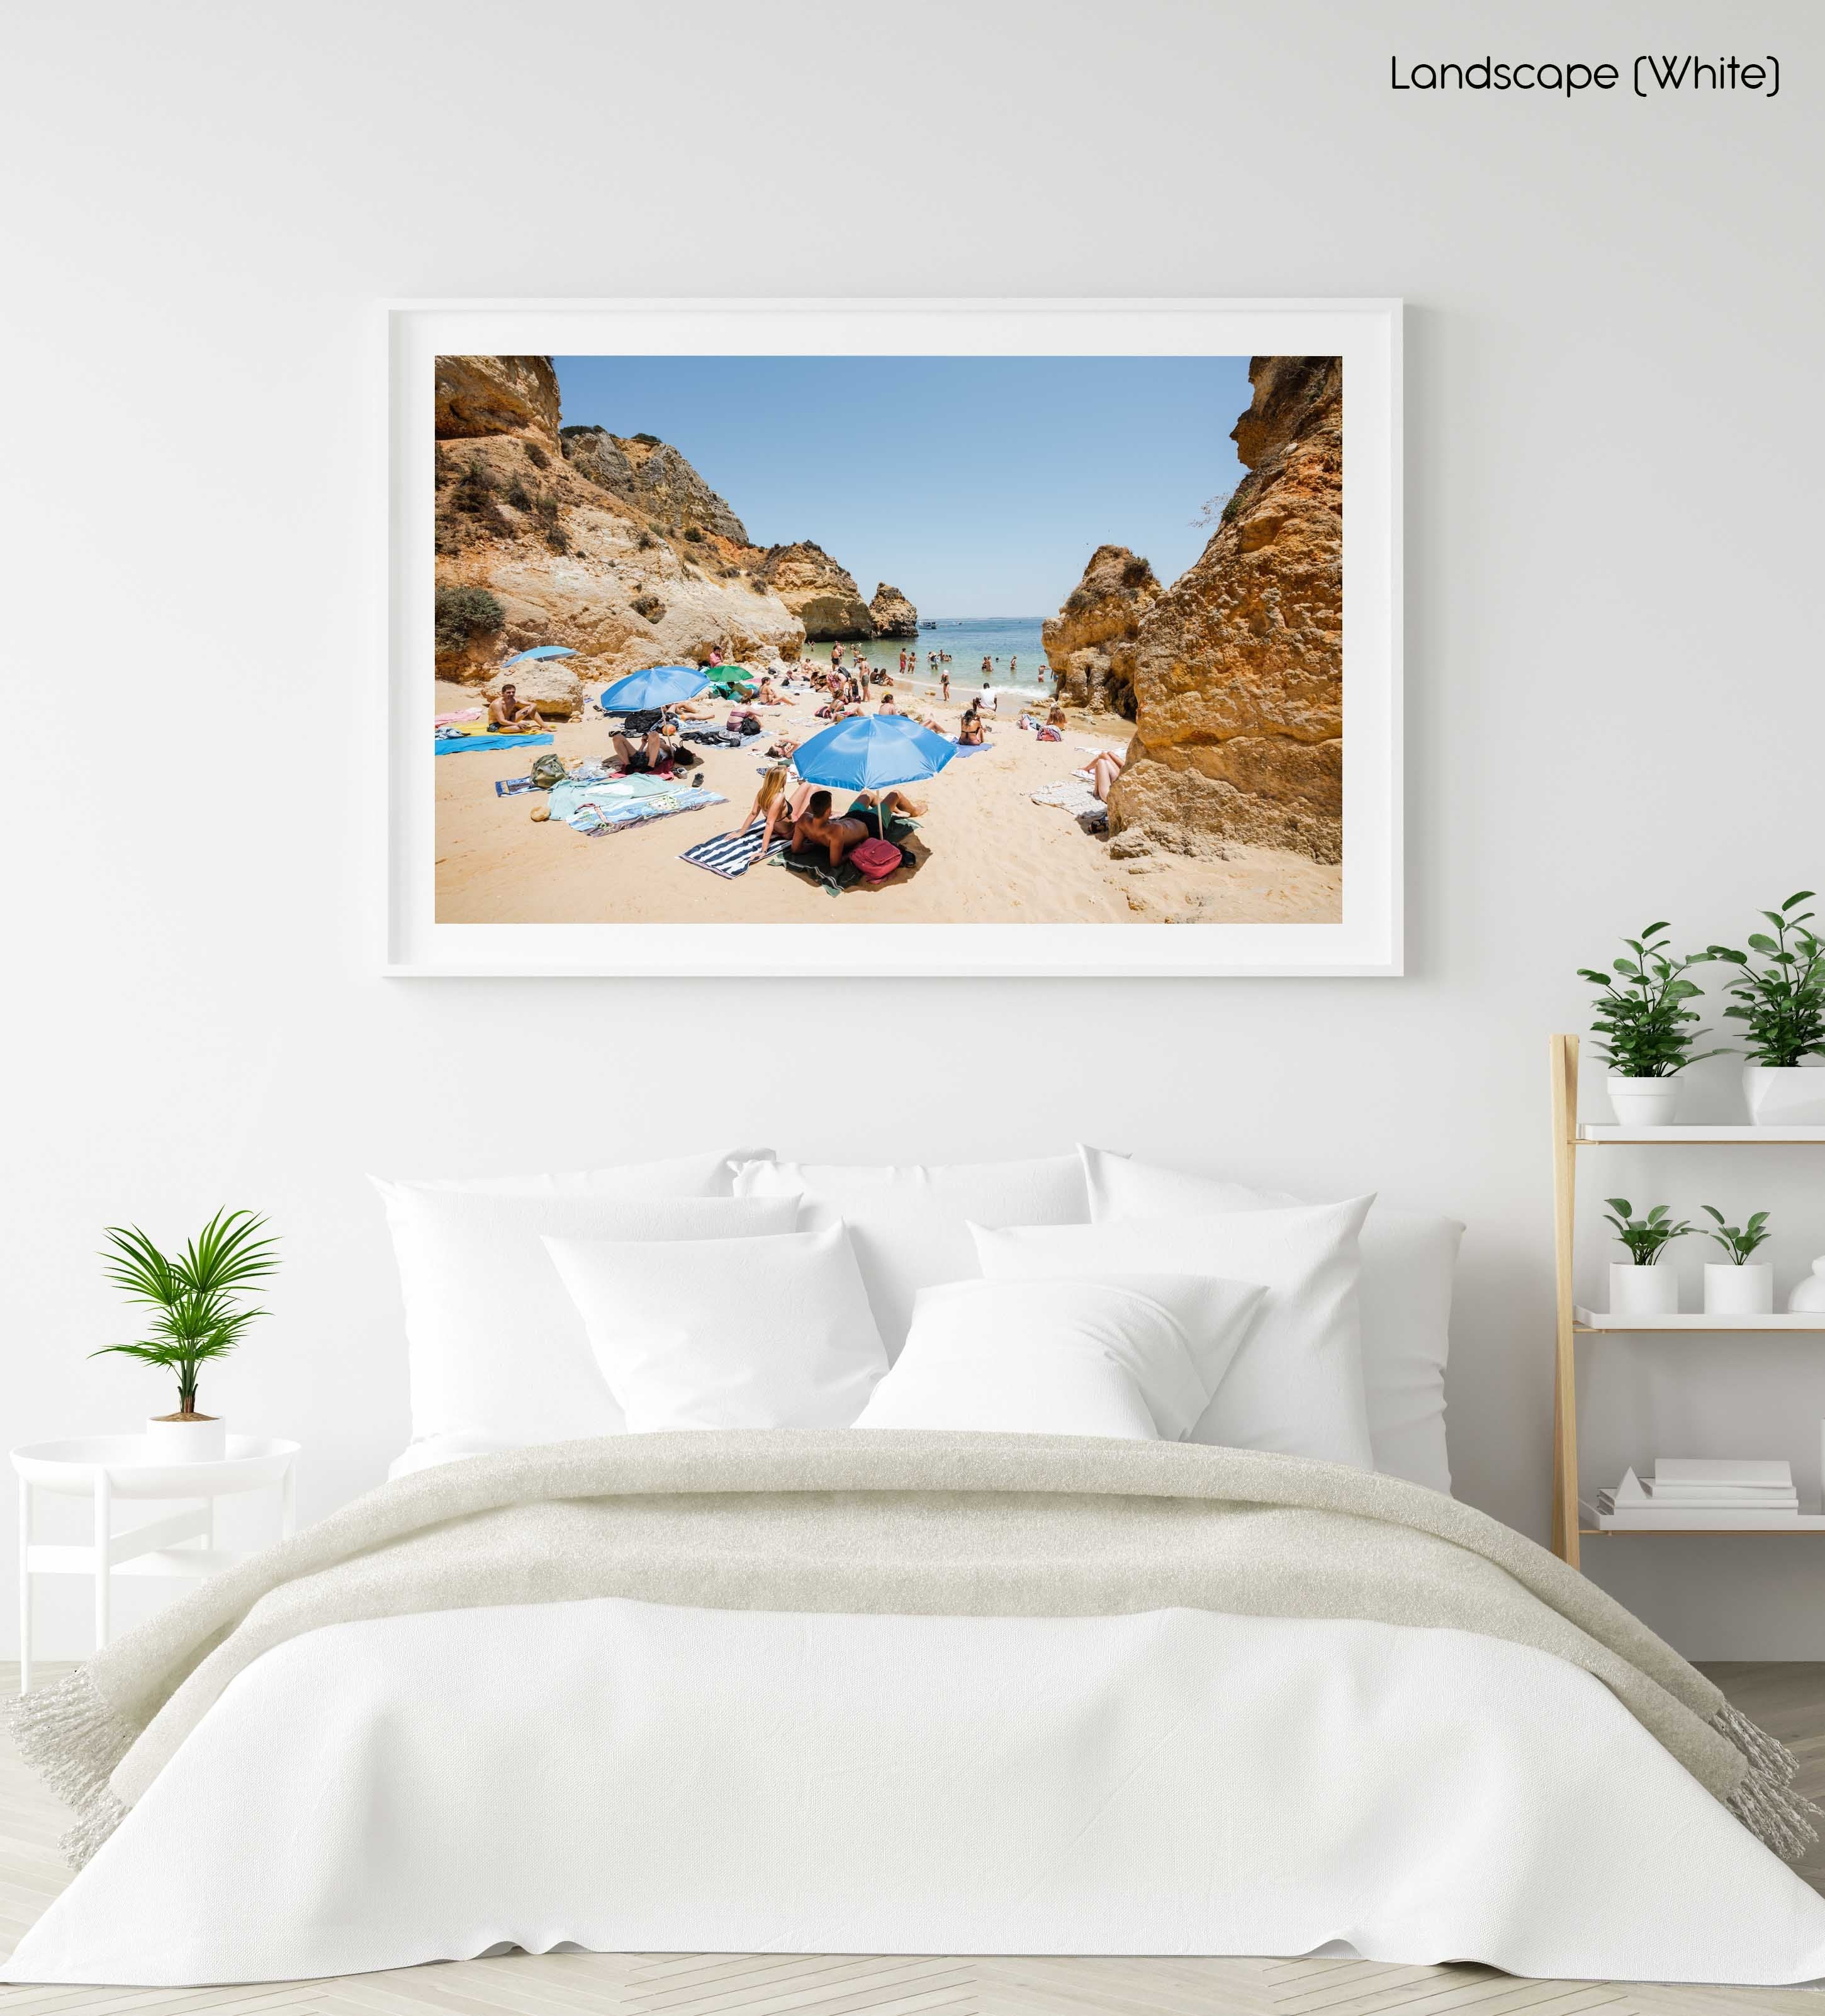 Blue umbrellas and people on Camilo beach Portugal in a white fine art frame